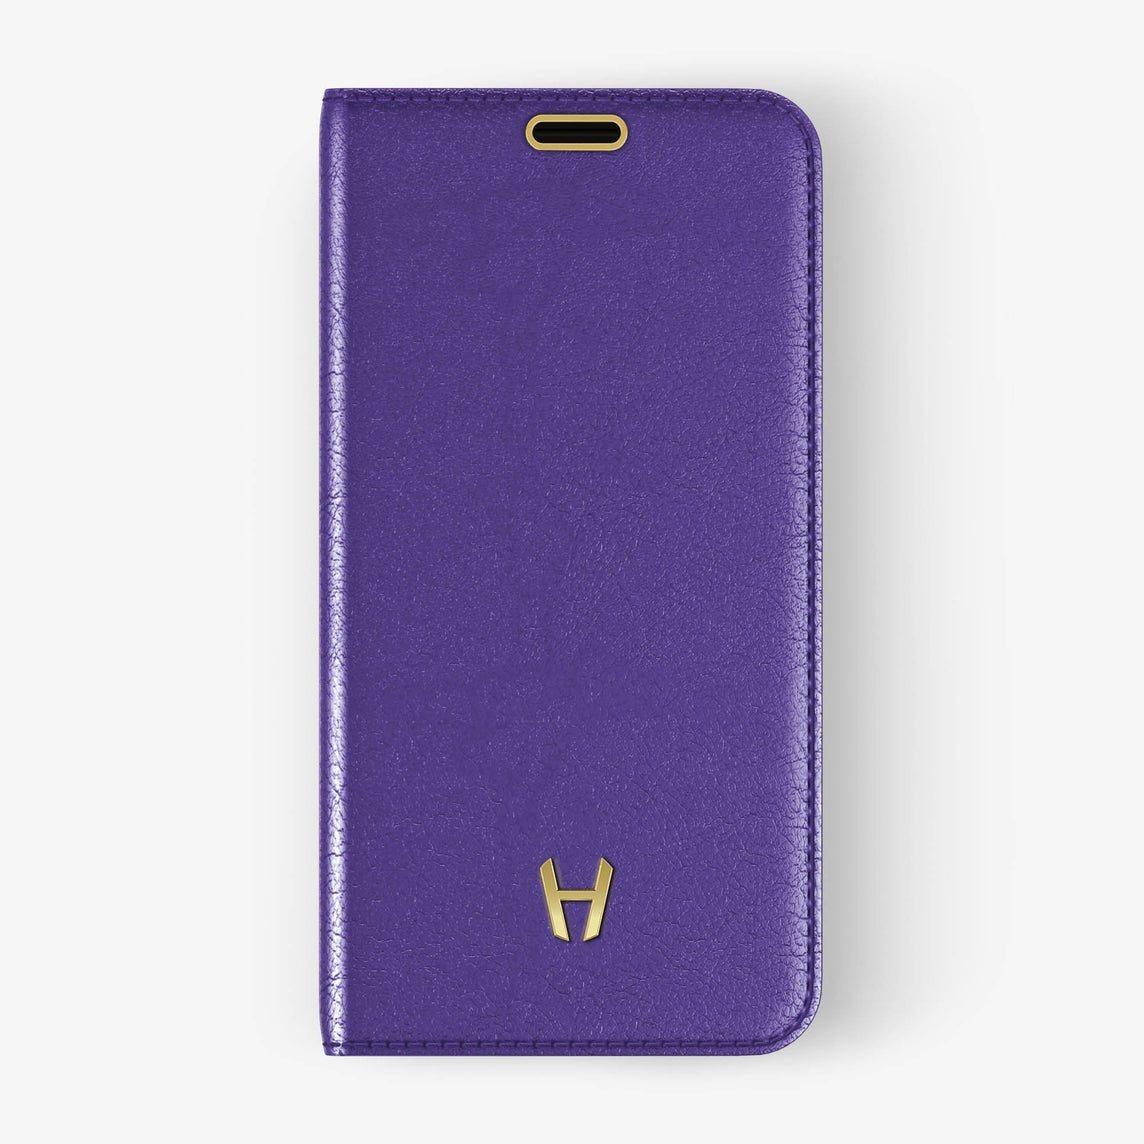 Violet Calfskin iPhone Folio Case for iPhone XS Max finishing yellow gold - Hadoro Luxury Cases - img2